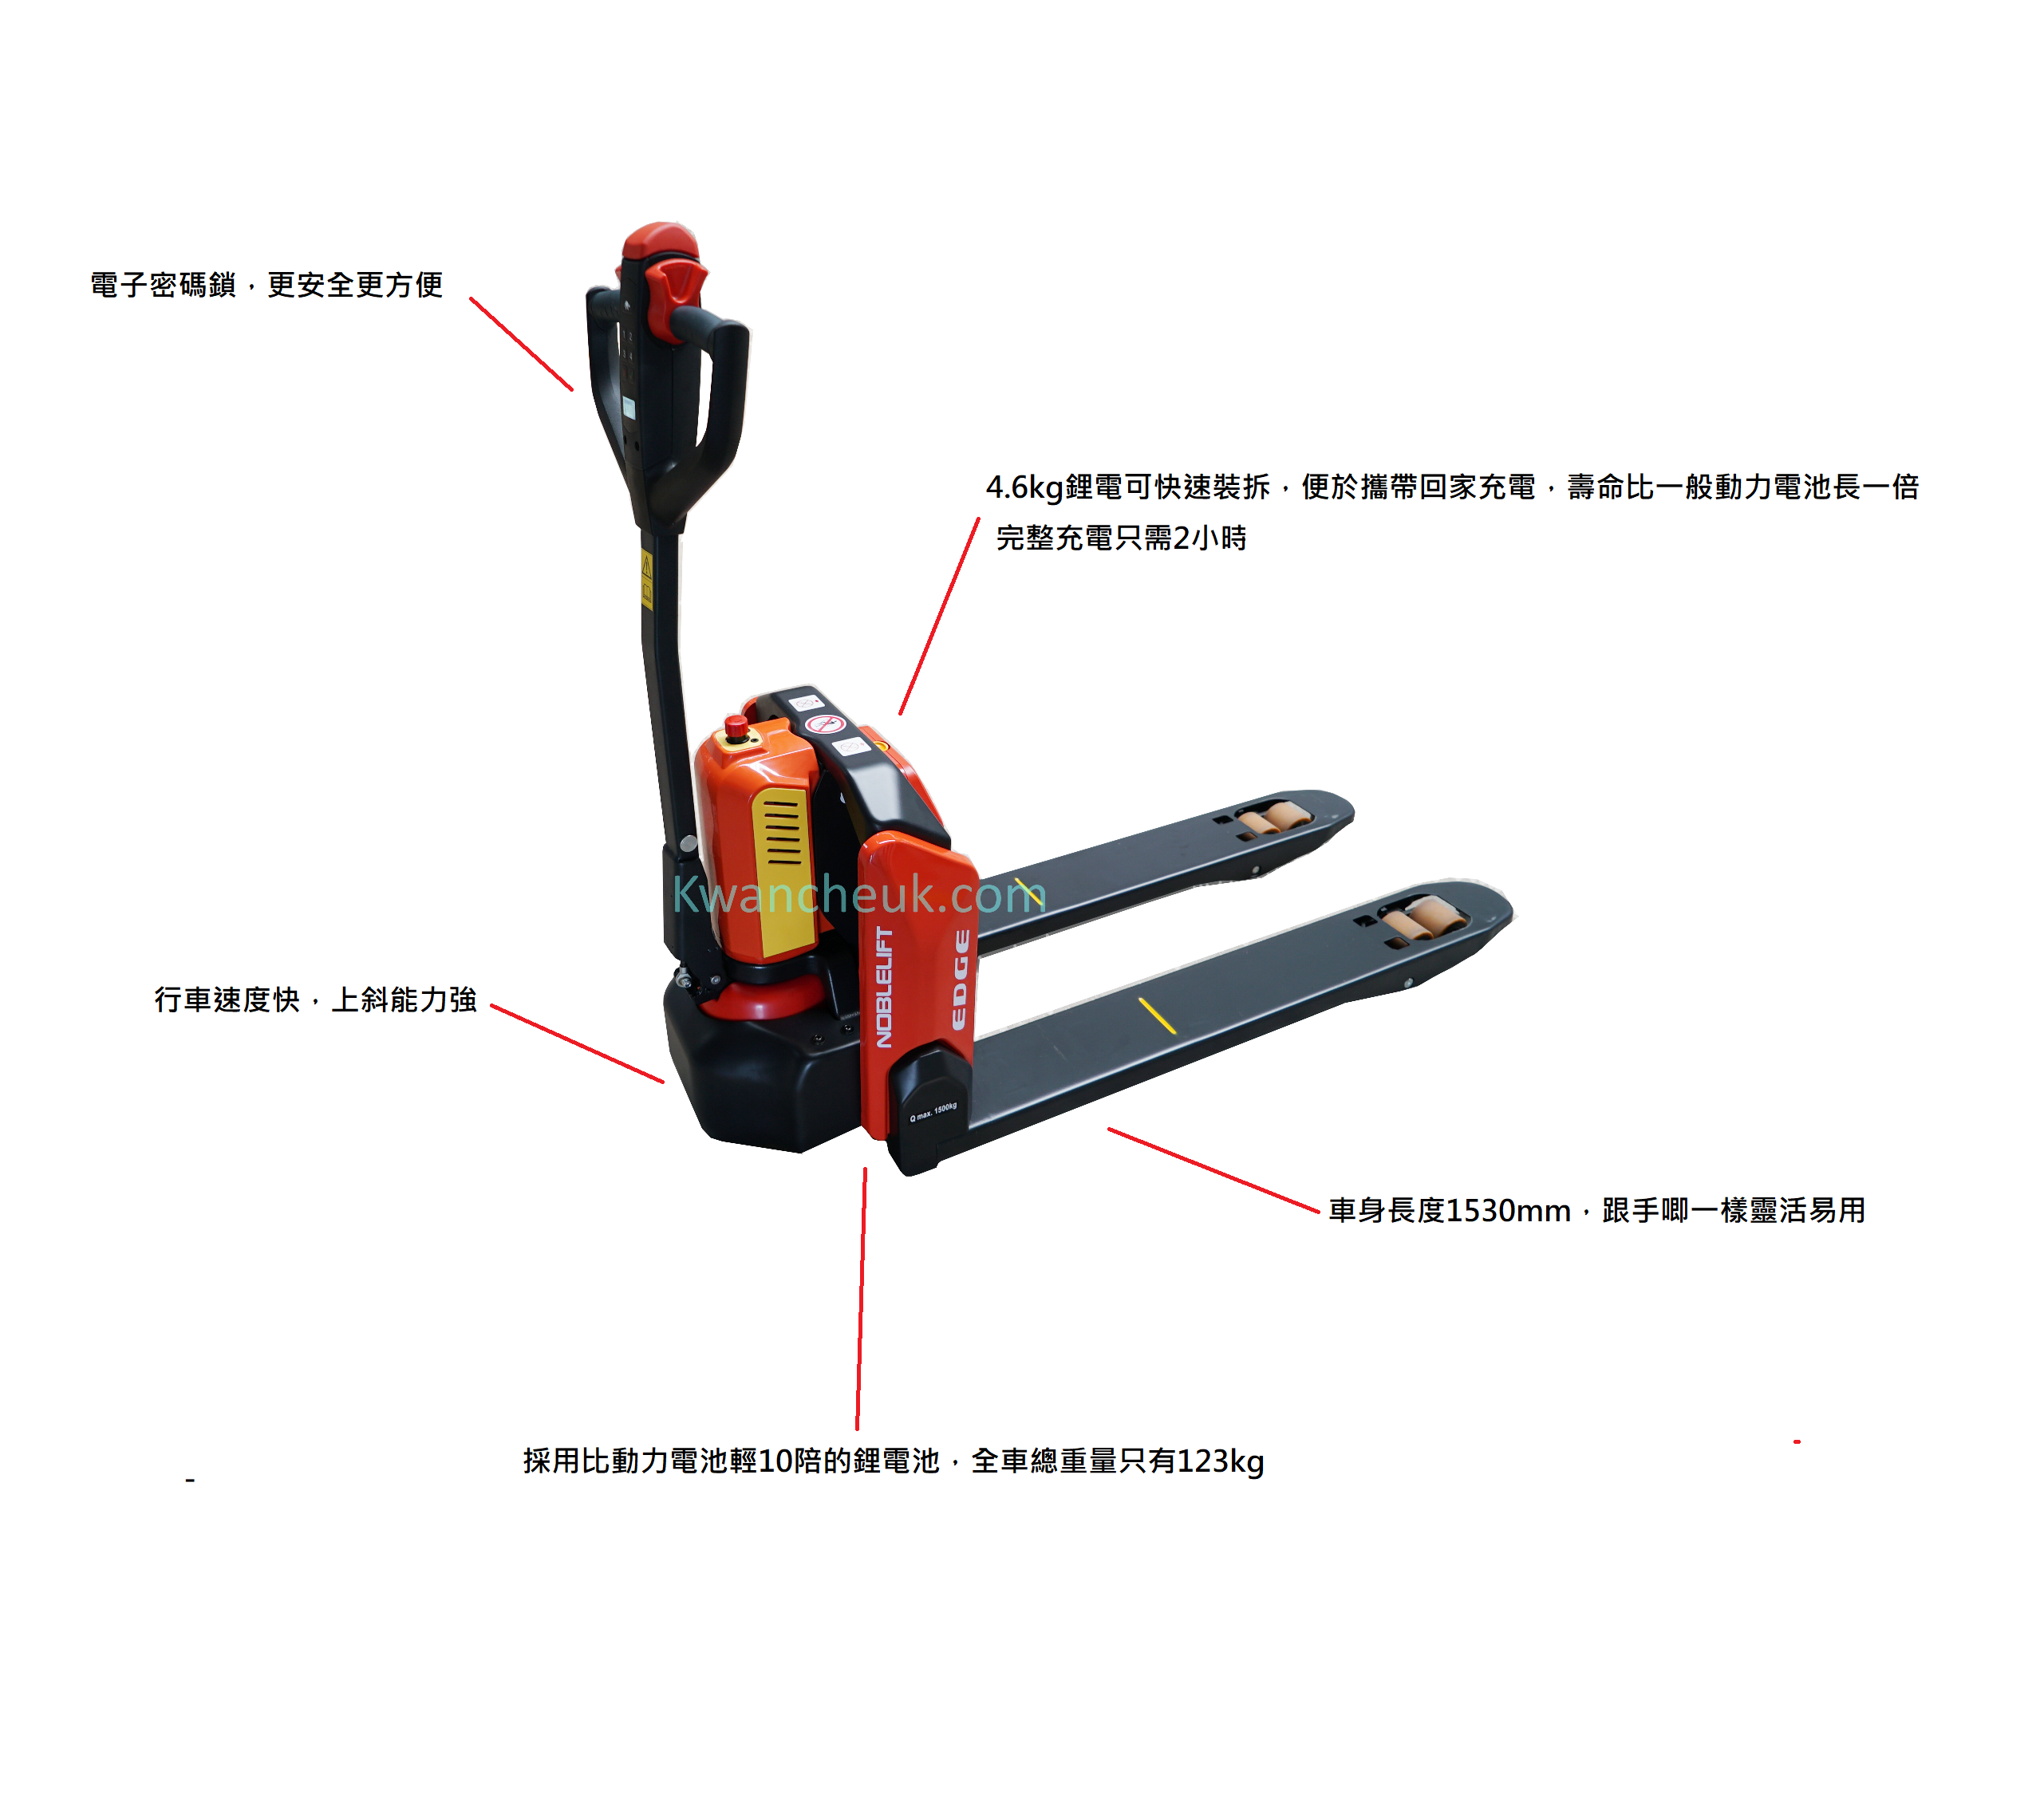 A4 - Kwancheuk Pallet Truck Engineering Company